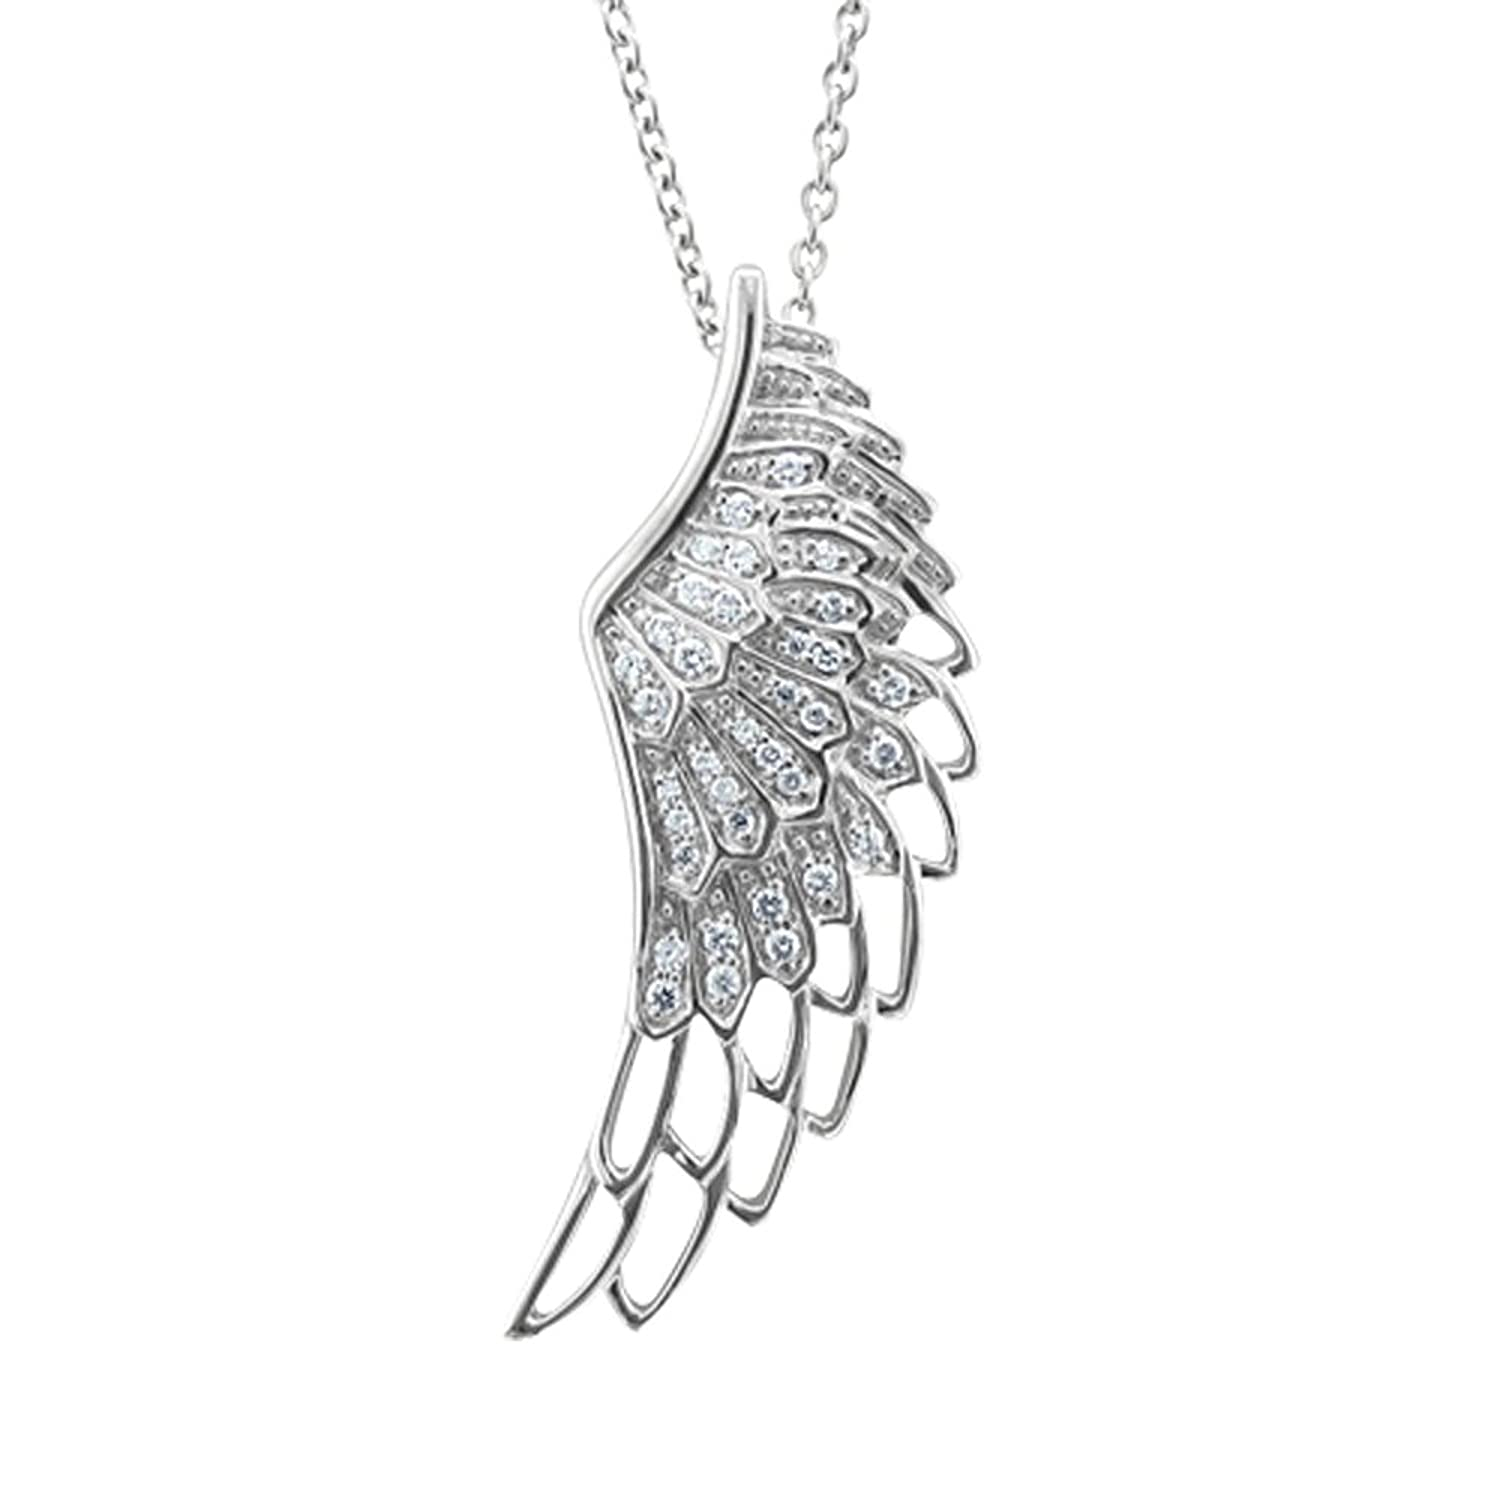 itm necklace wings ebay chain long angel silver wing s guardian crystal large pendant